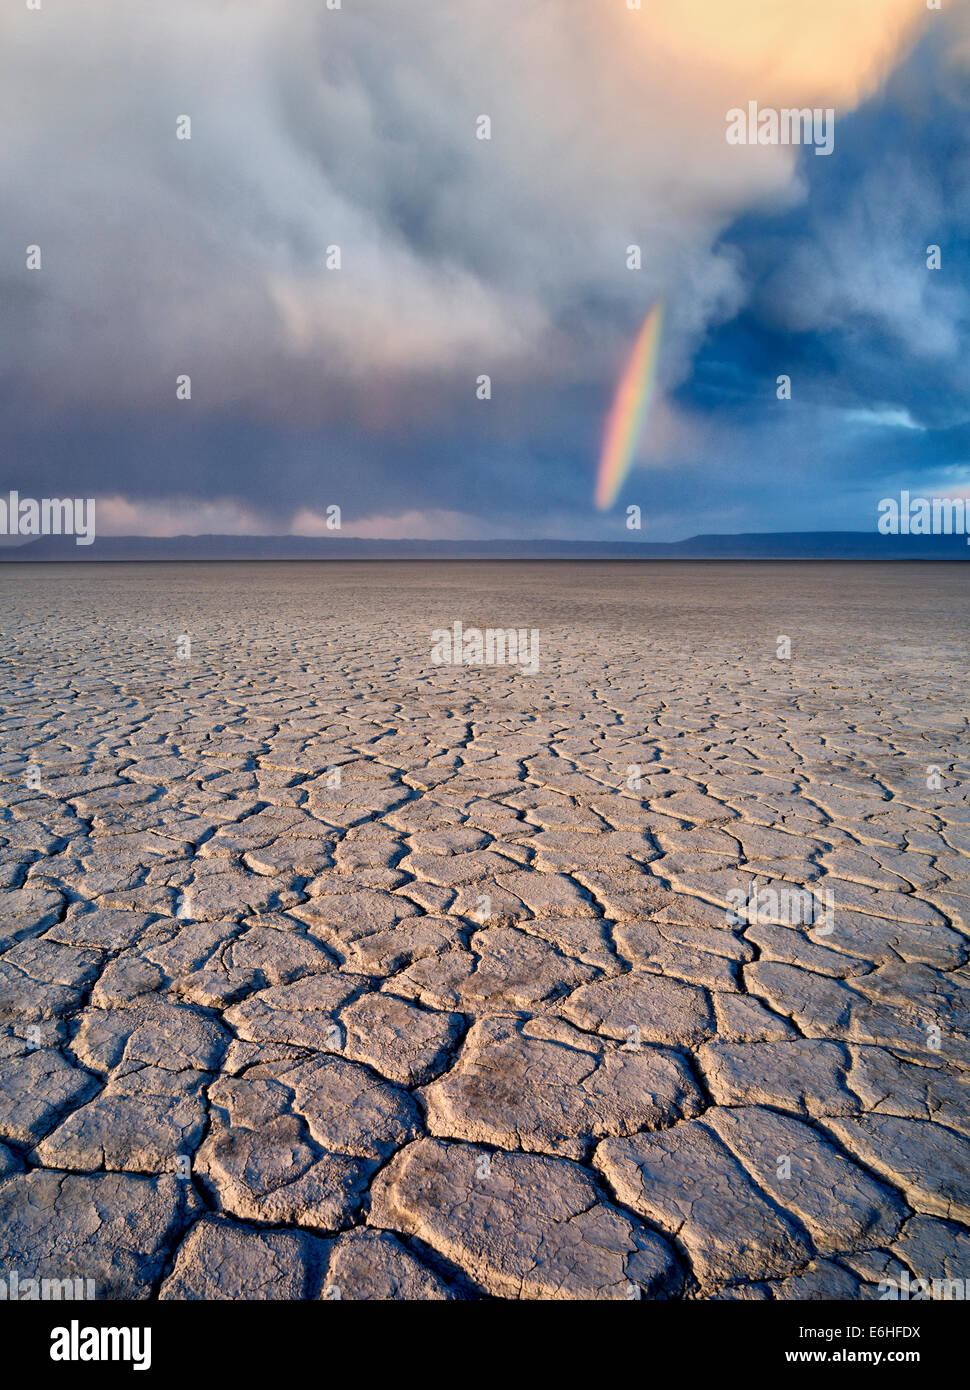 Alvord Desert with rainbow. Harney County, Oregon. - Stock Image